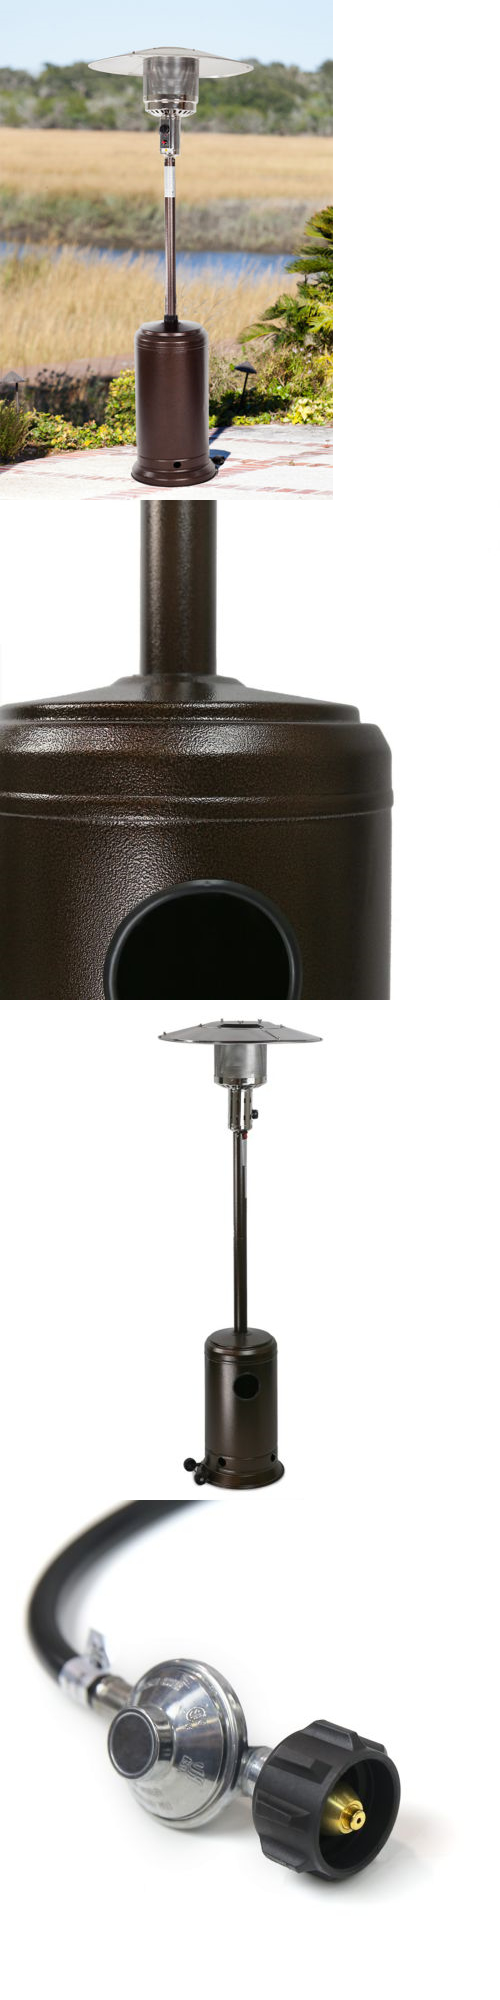 Patio heaters hammered bronze outdoor patio heater propane